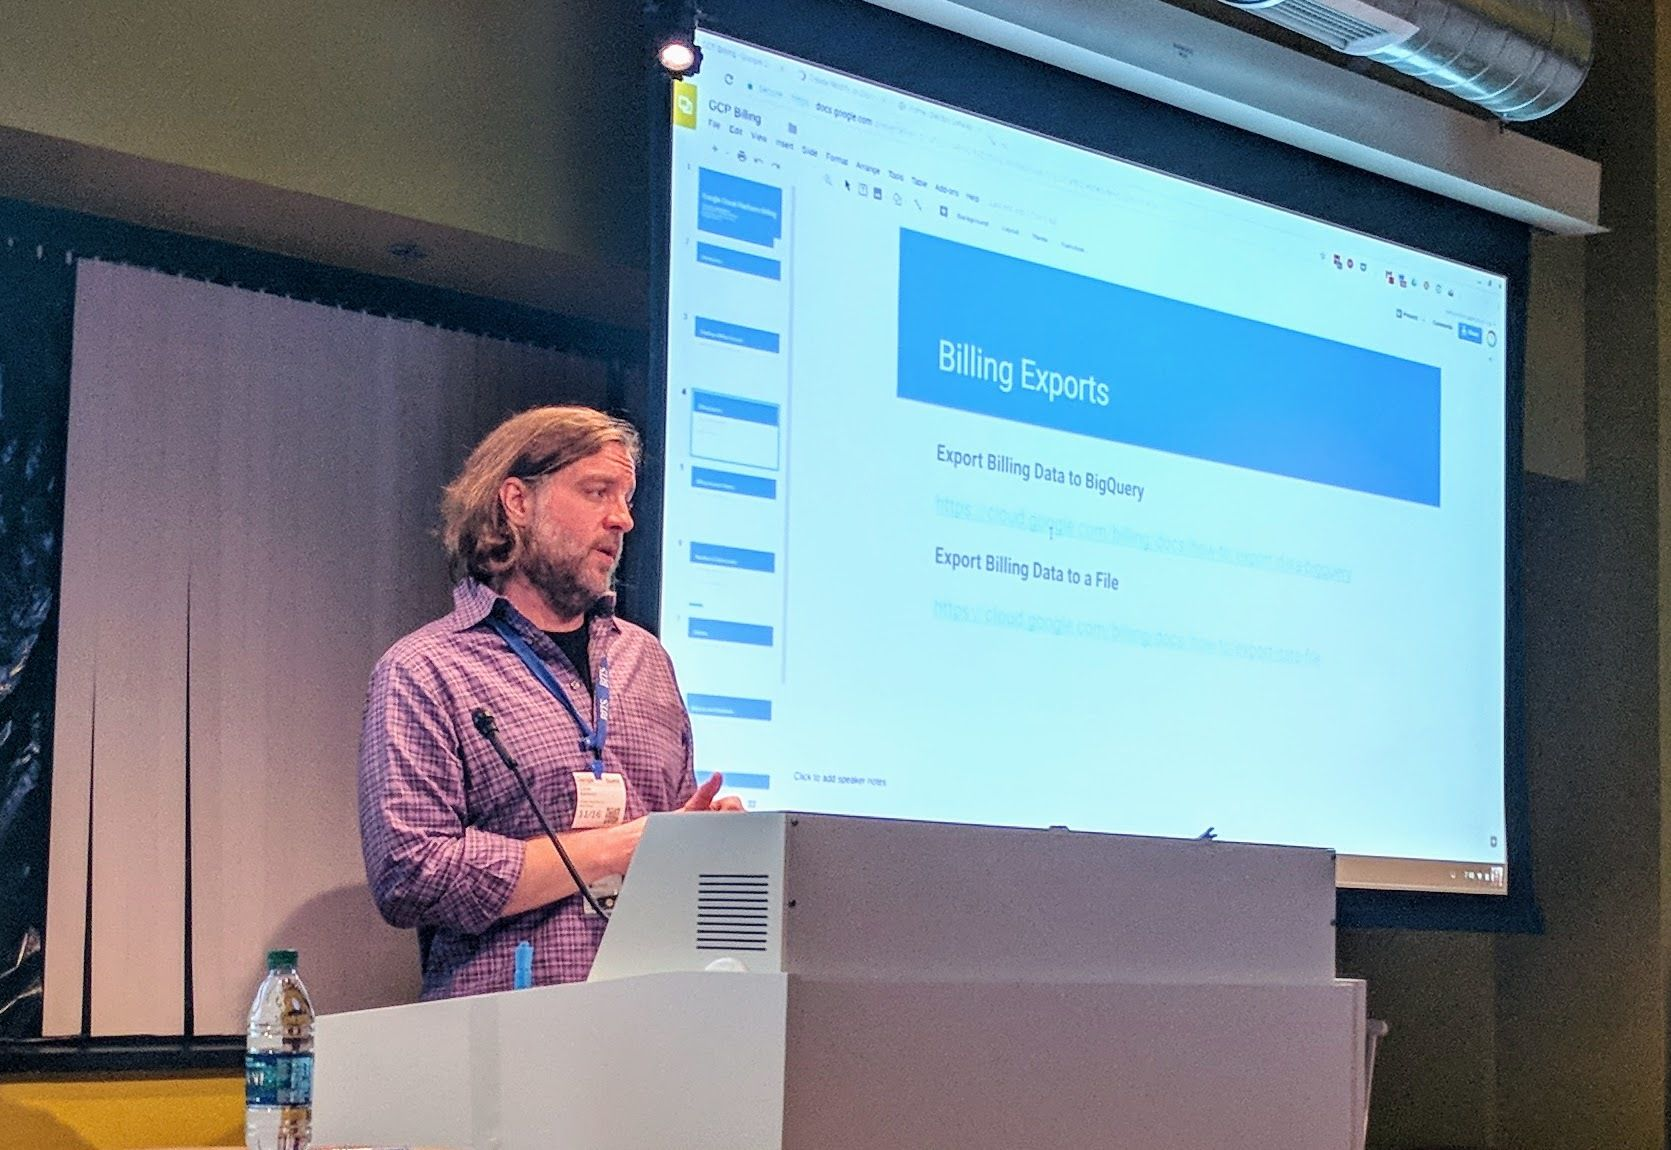 Photos - GDG Cloud Boston (Google Developer Group